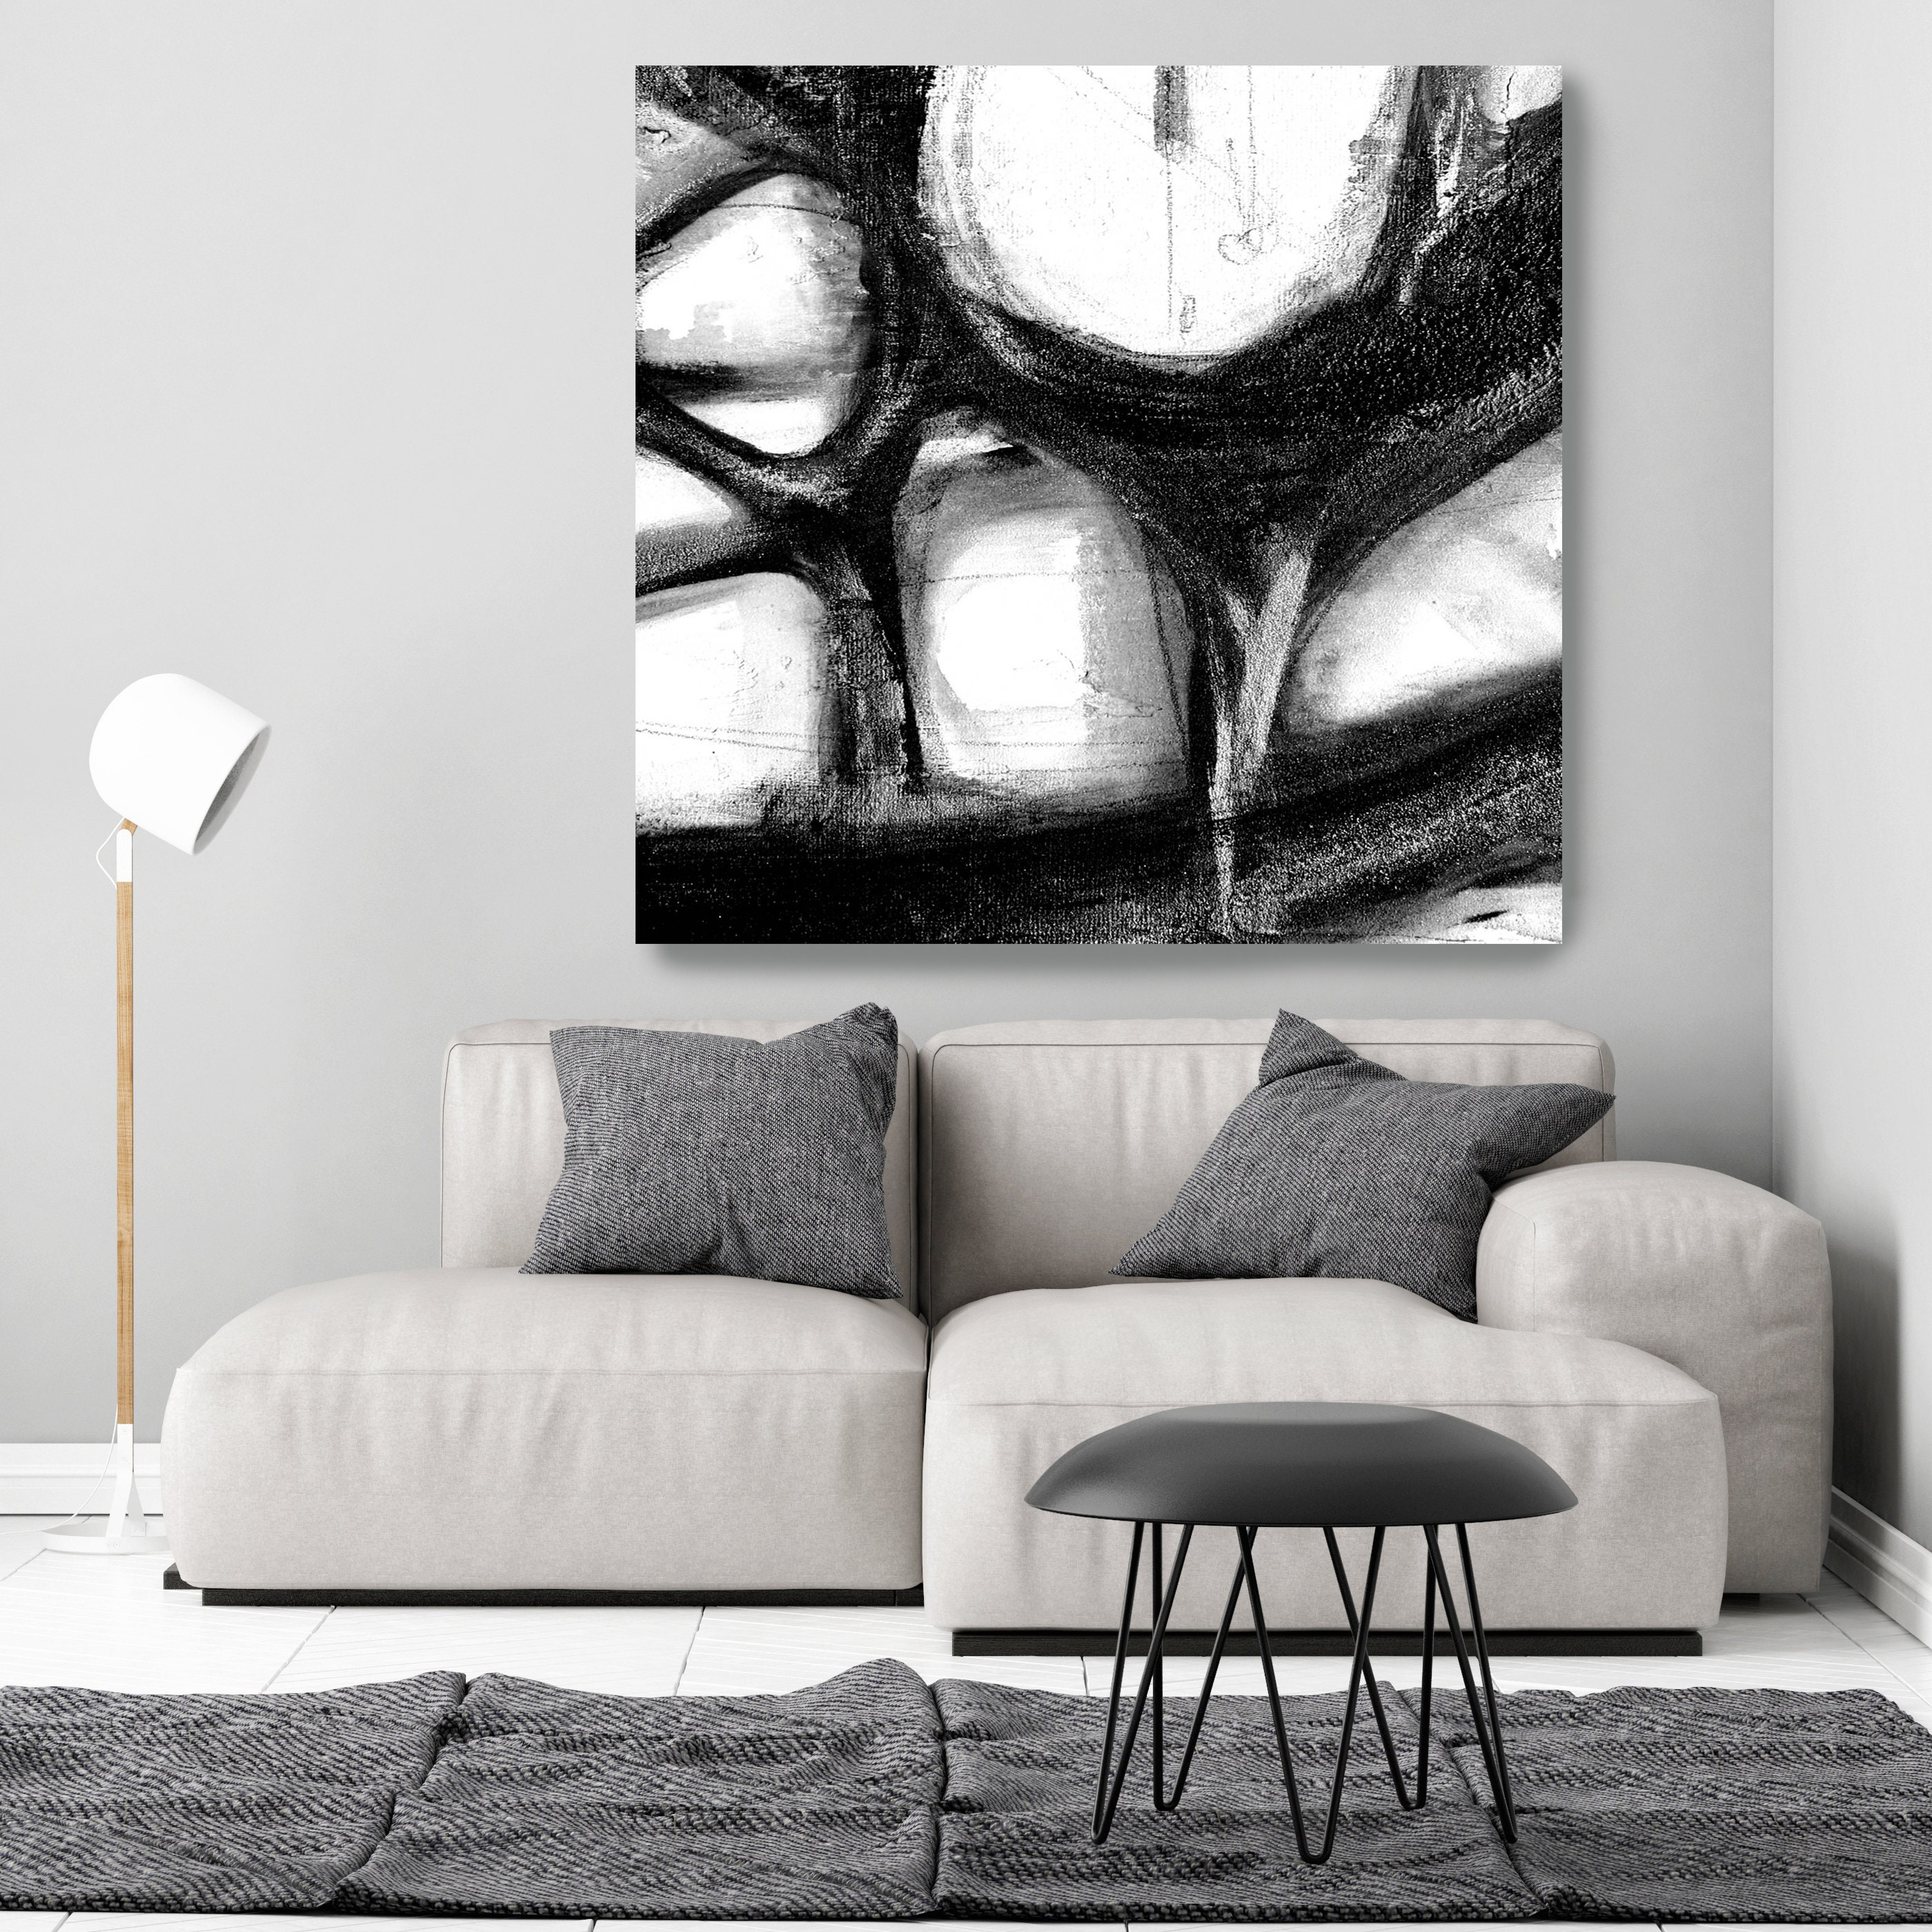 Black and white abstract monochrome oversized abstract painting on canvas art black white painting large wall art decor canvas print